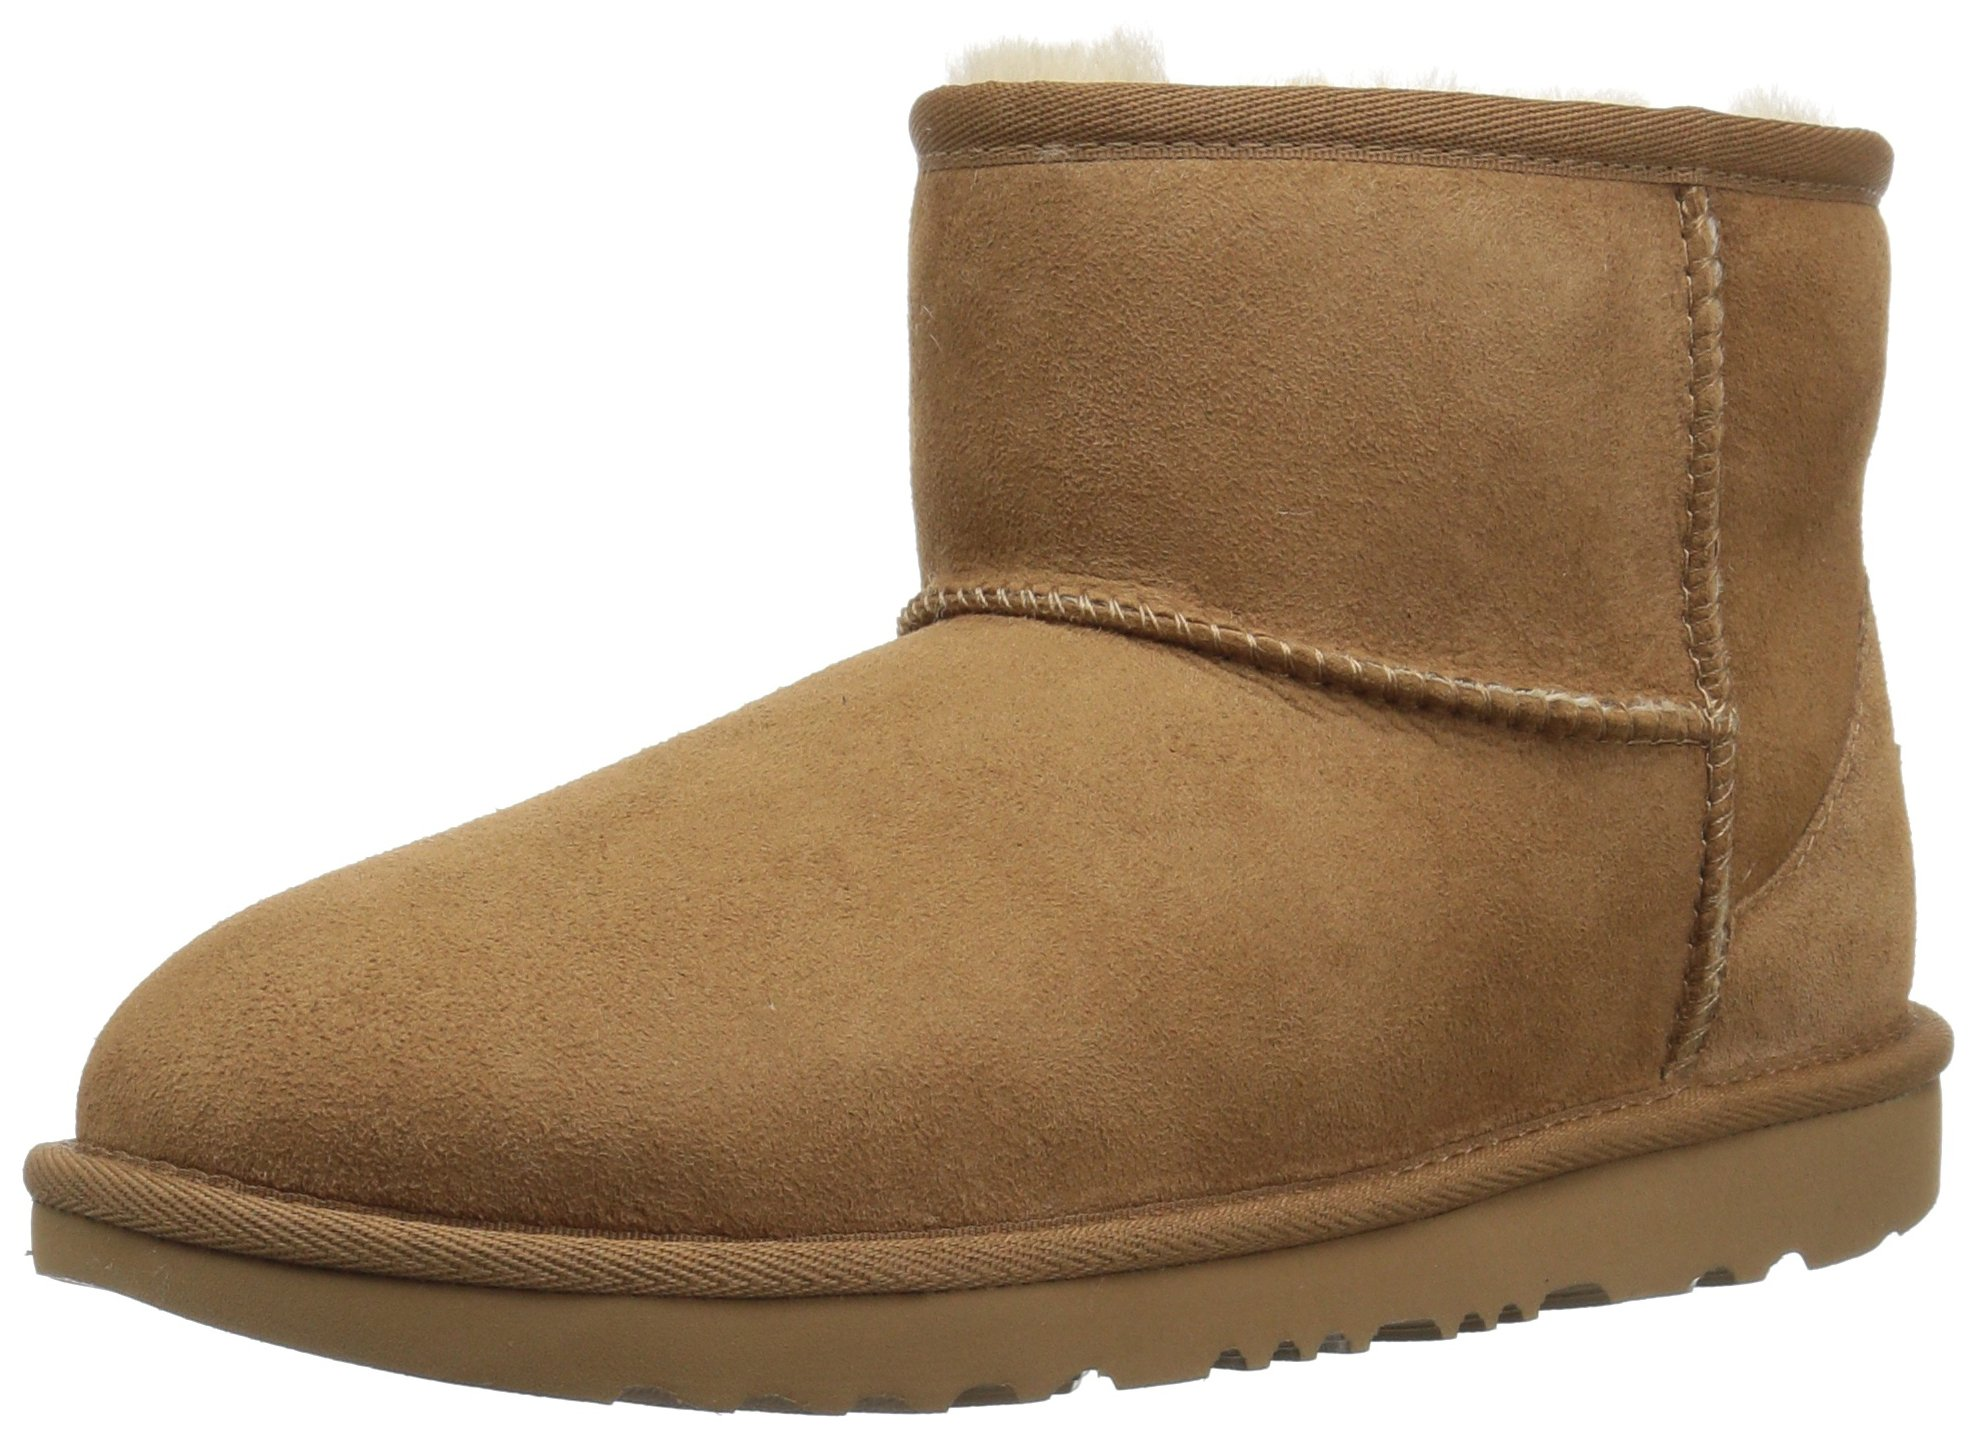 UGG Kids K Classic Mini II Pull-on Boot, Chestnut, 6 M US Big Kid